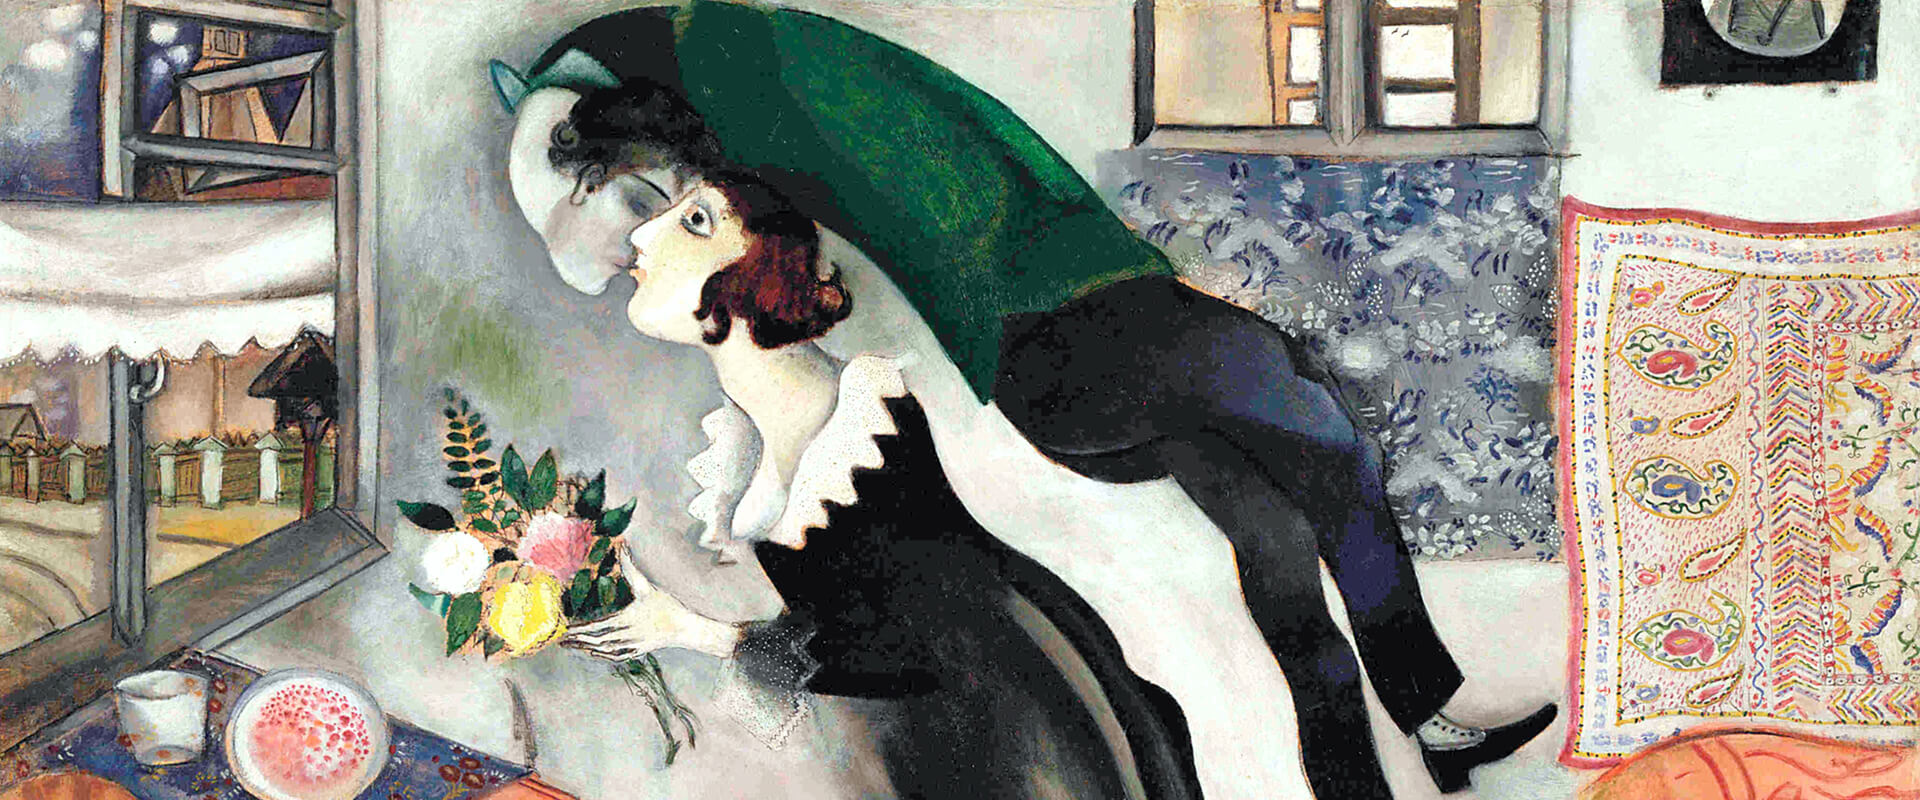 Marc Chagall Paintings Artworks Collection | Buy Posters, Frames, Canvas, Digital Art & Large Size Prints Of The Famous Modern Master's Artworks